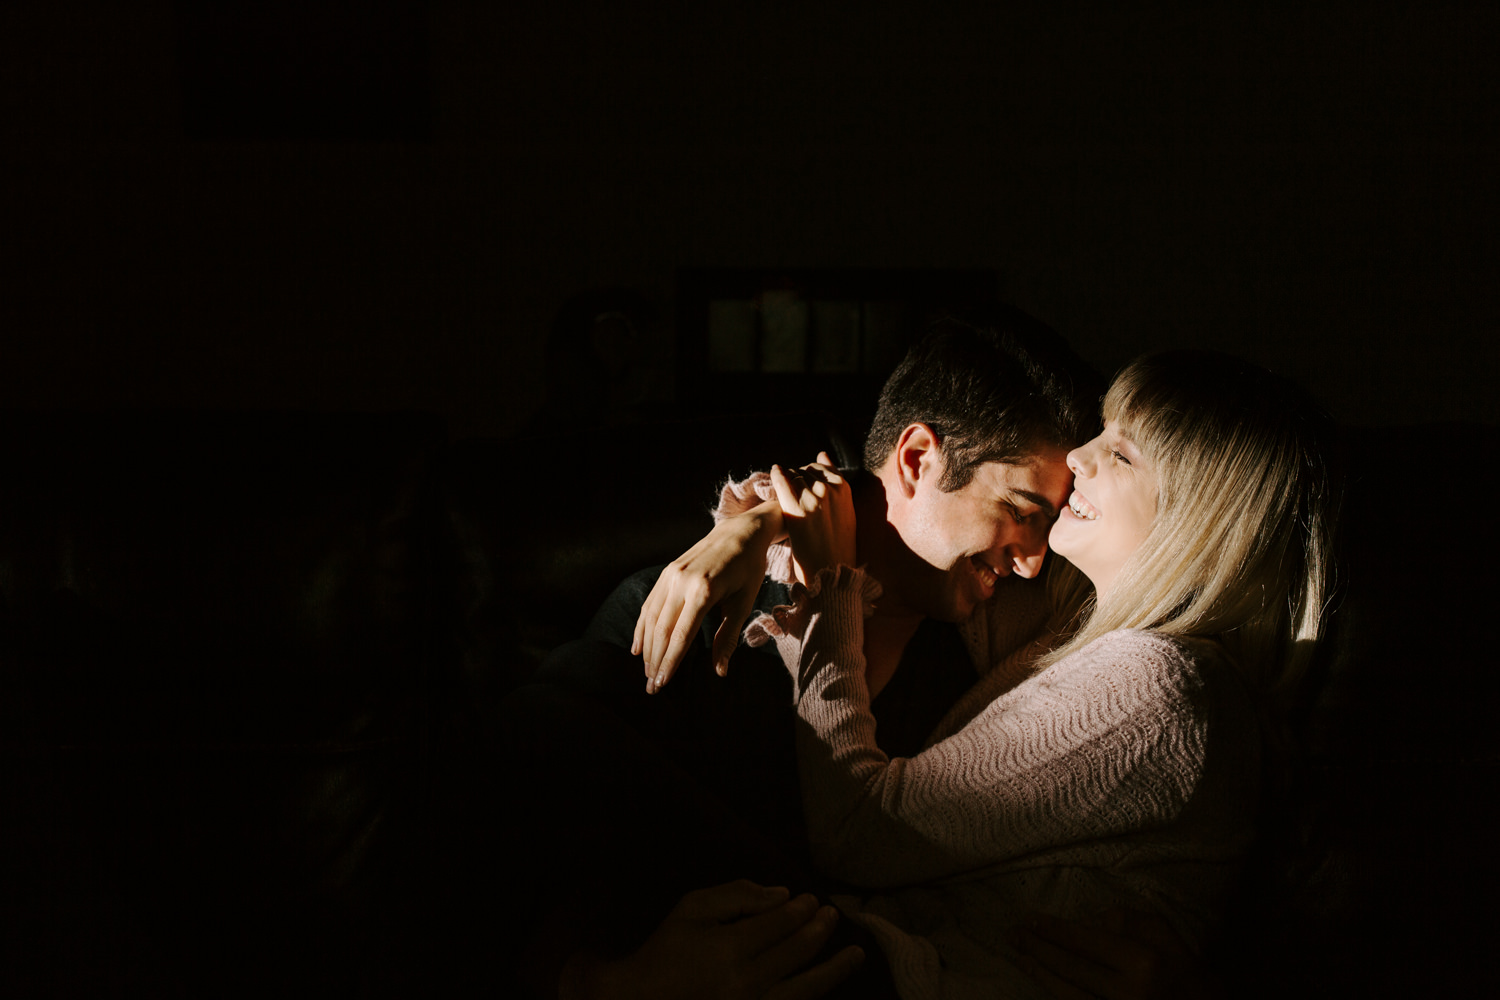 artificial-light-in-home-session-9.jpg